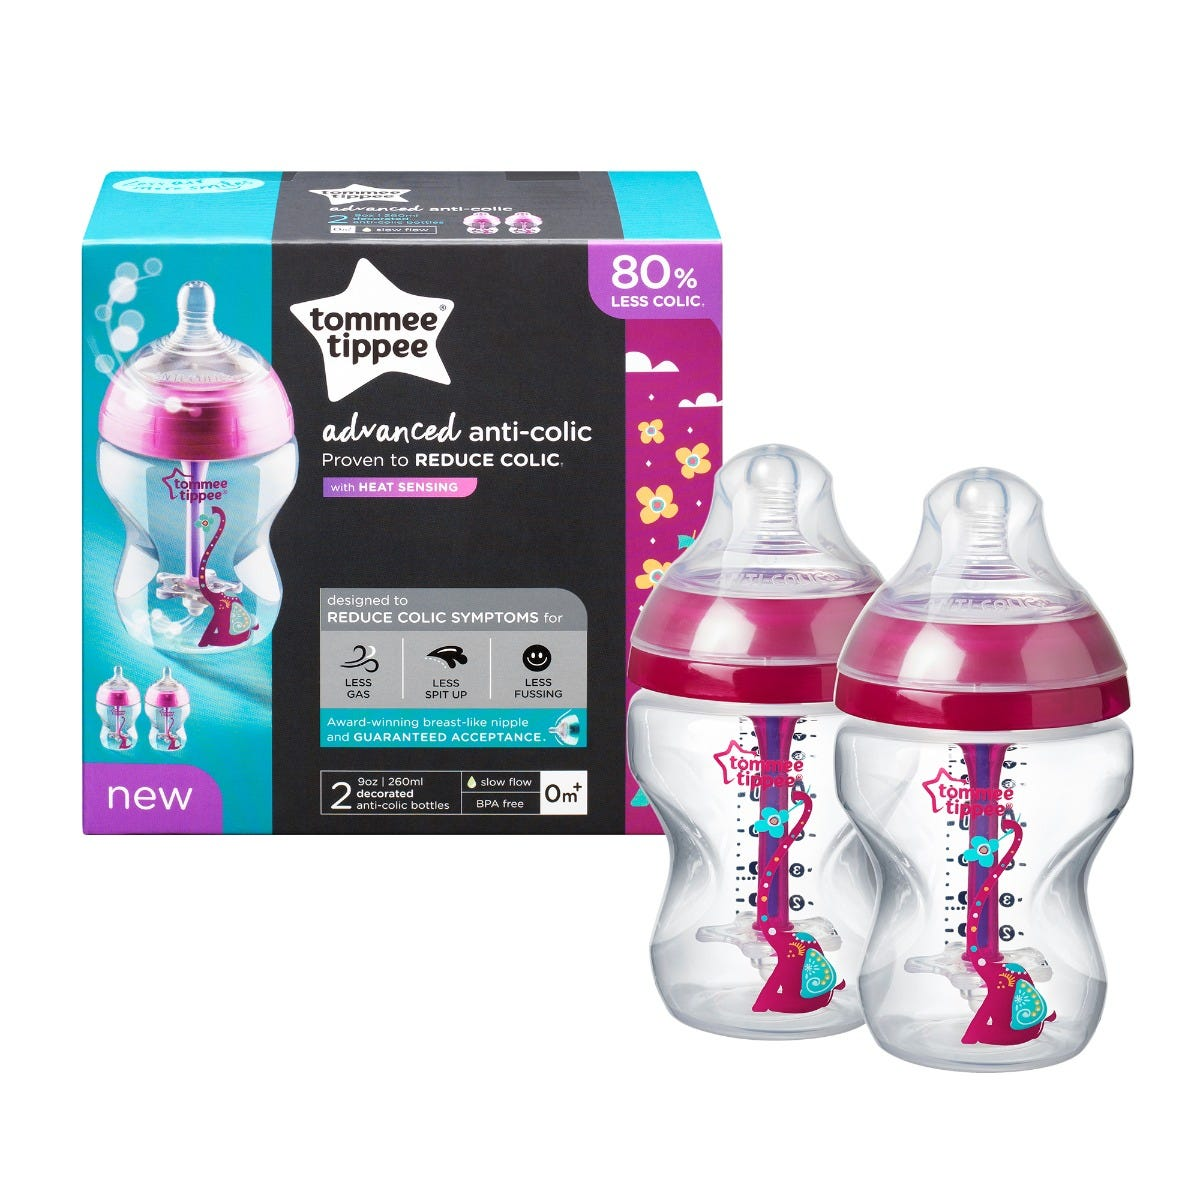 2-x-9-oz-advanced-anti-colic-baby-bottles-with-red-elephant-design with packaging